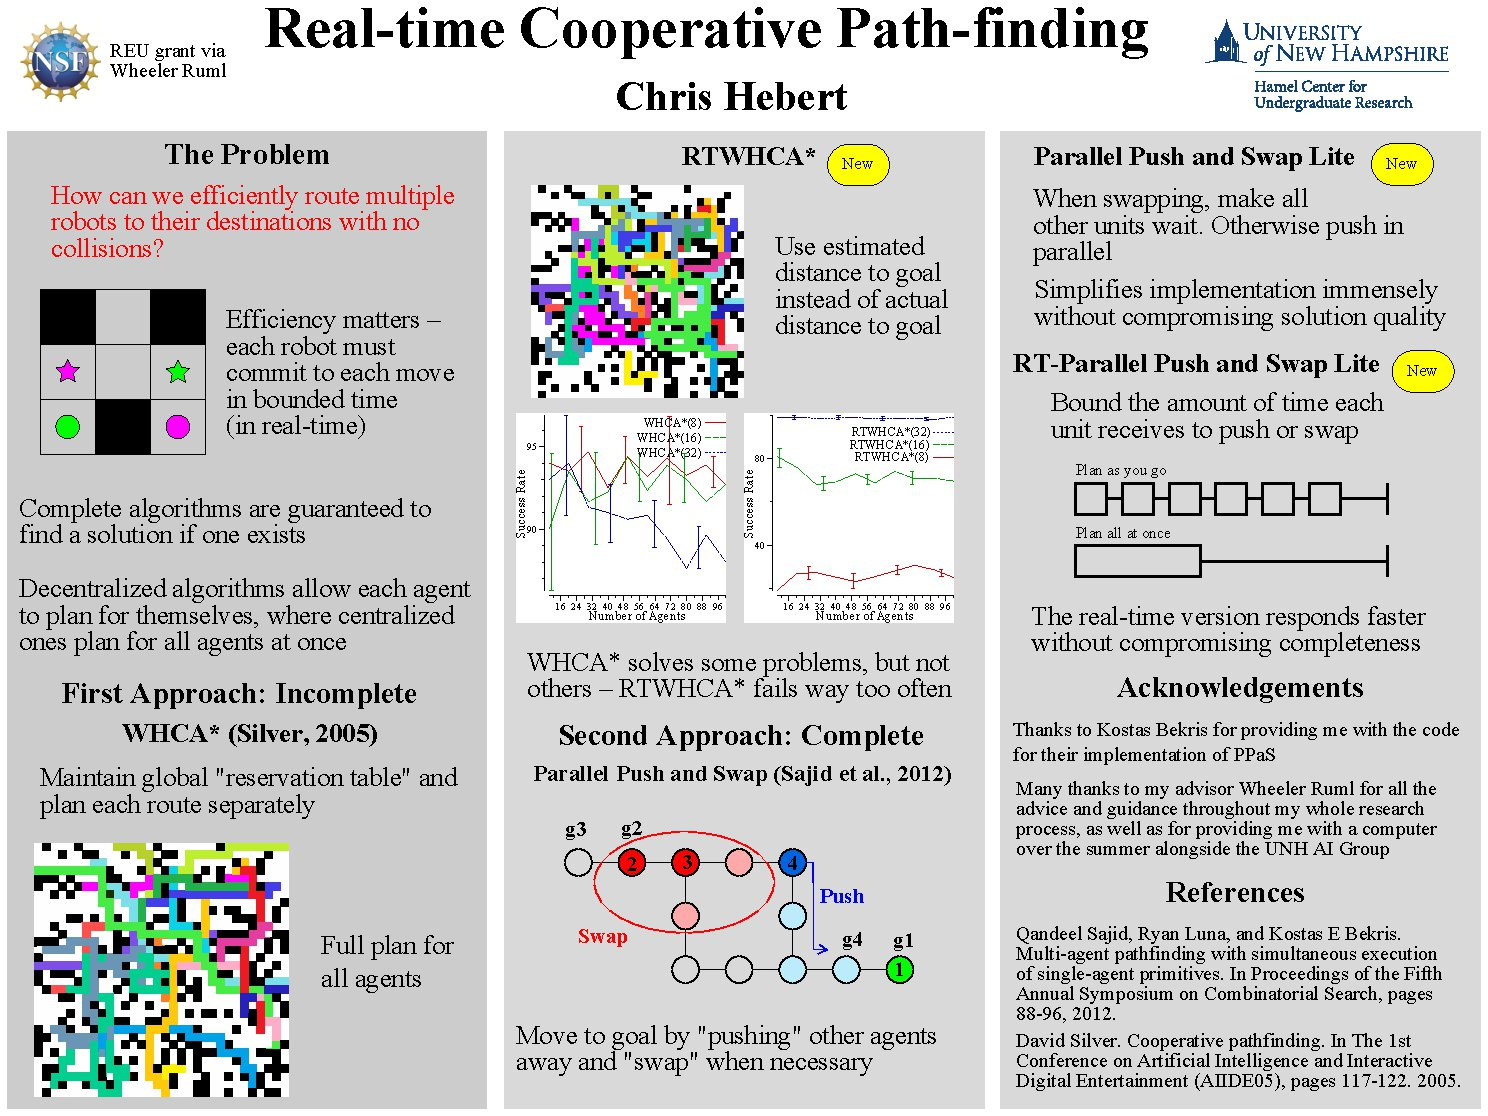 Real-Time Cooperative Path-Finding by crb46